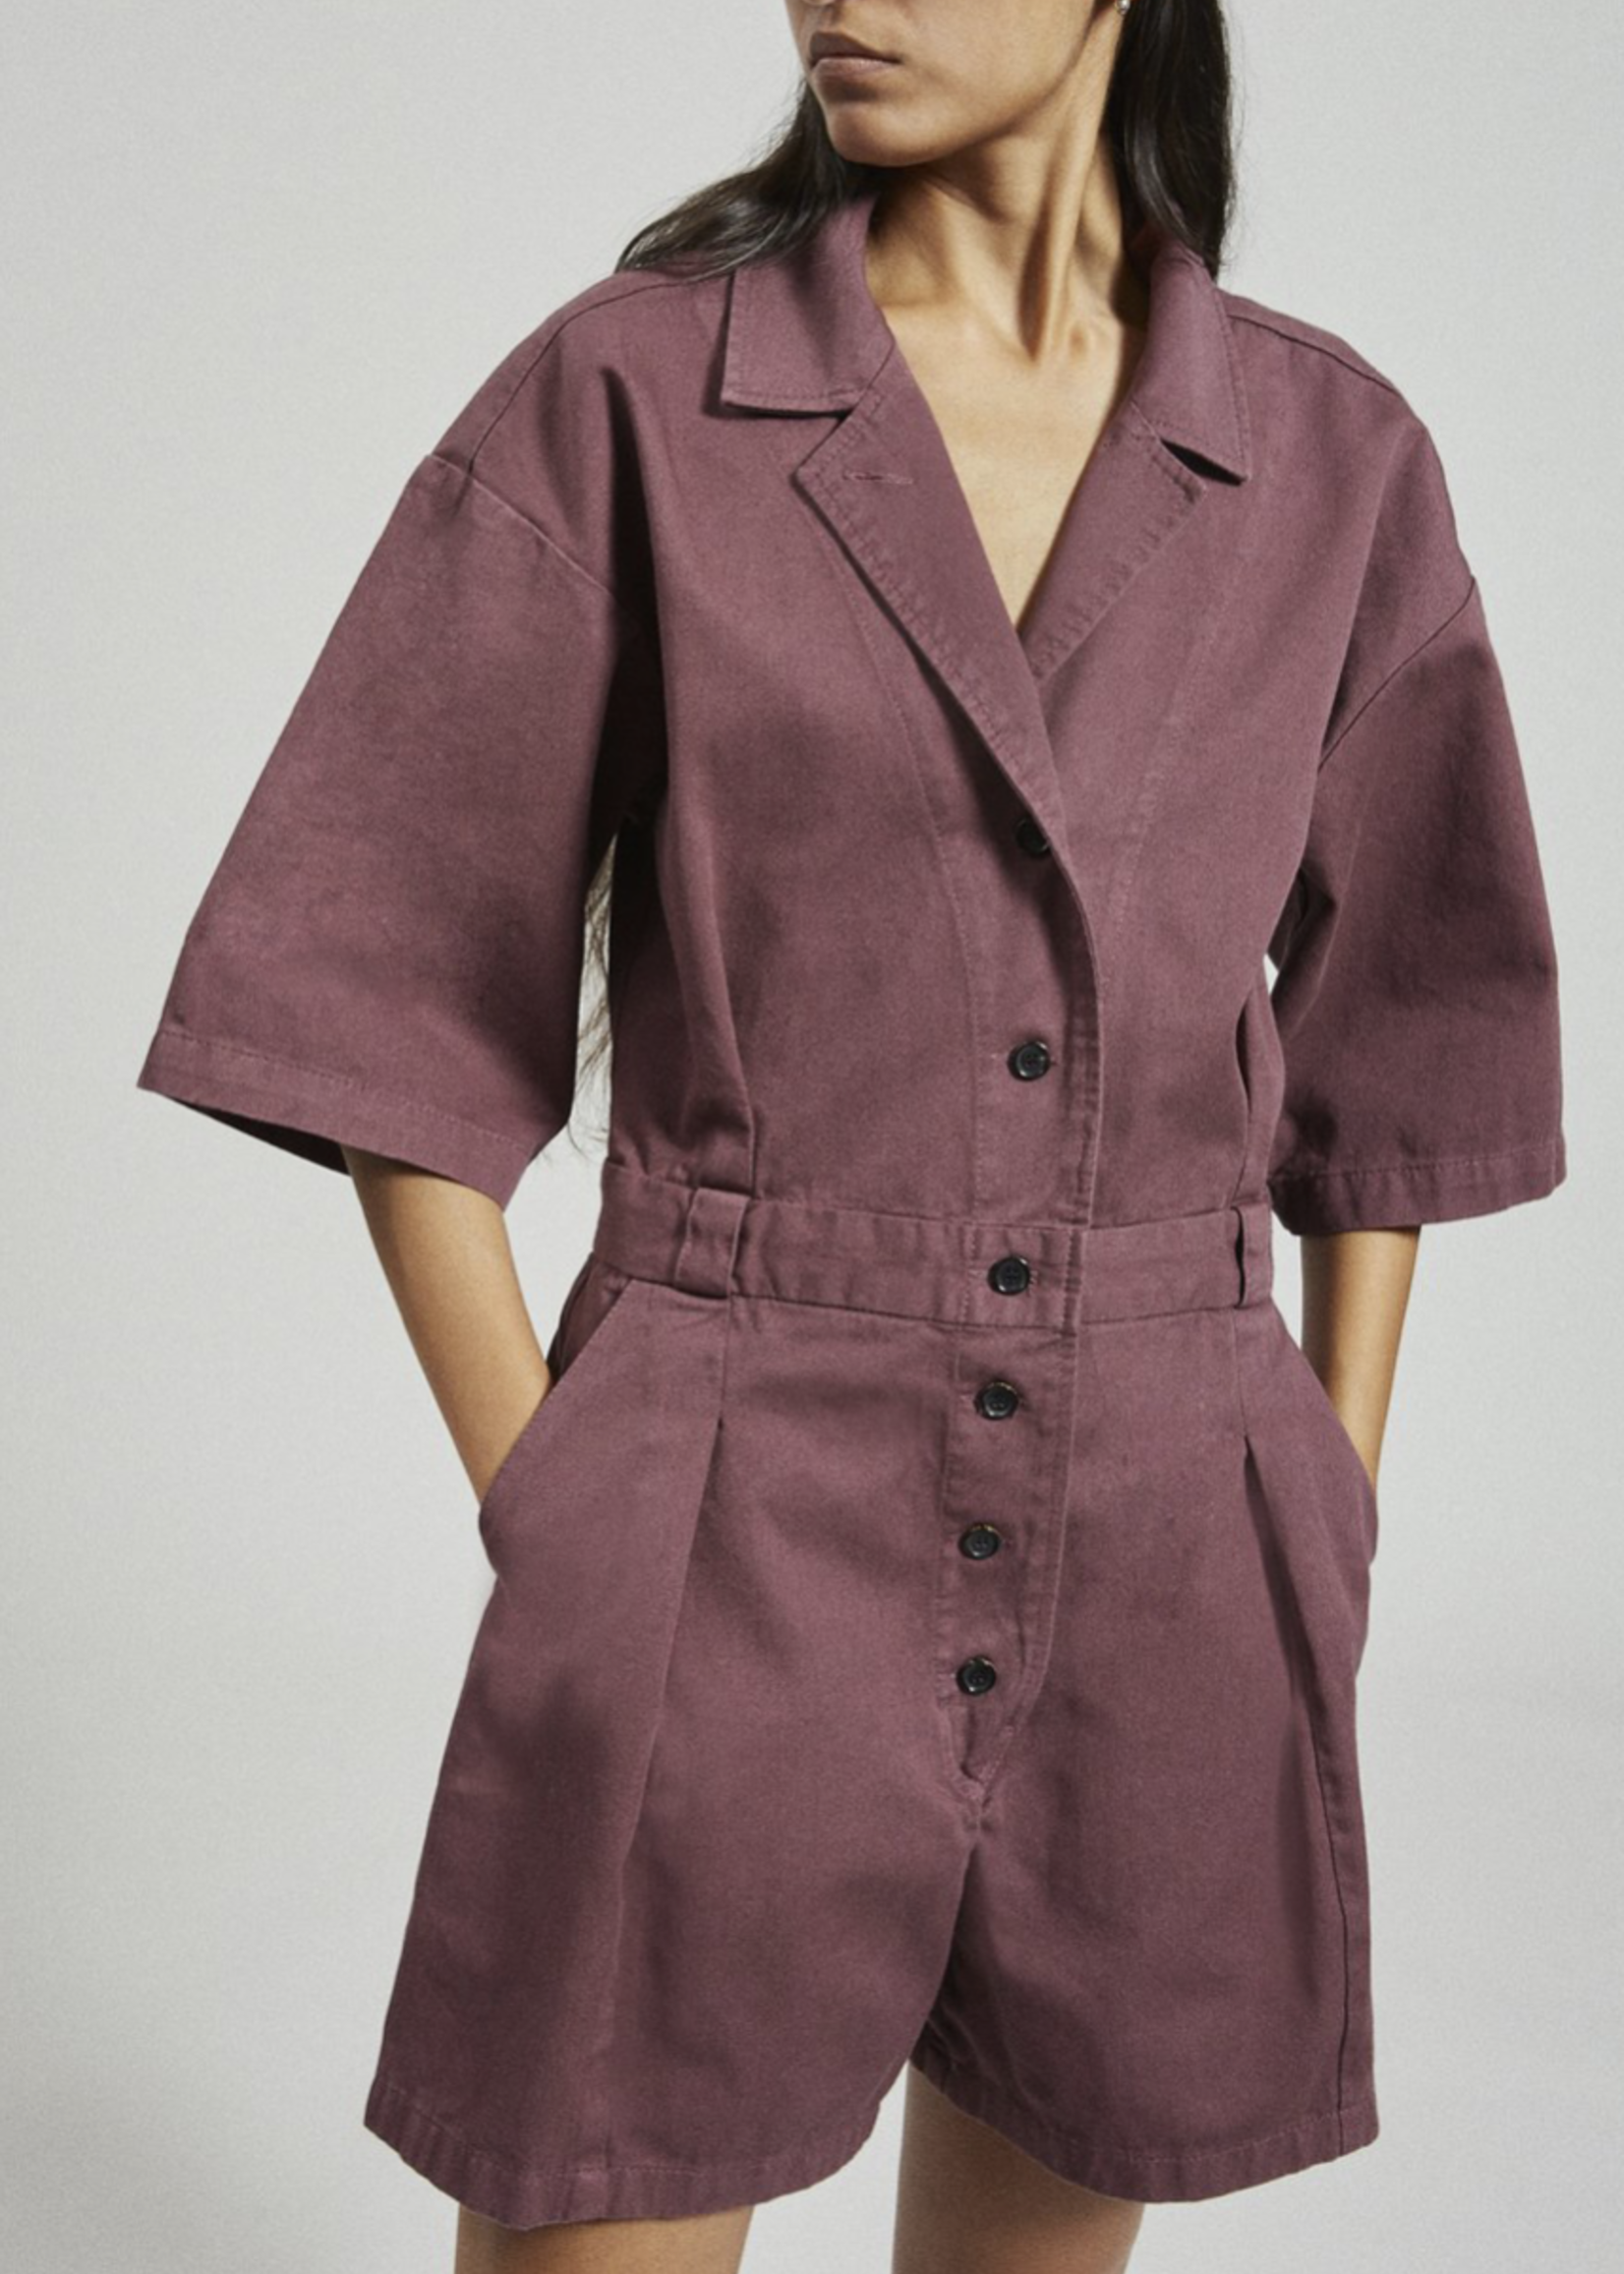 Rachel Comey Larch Shortsuit in Clay